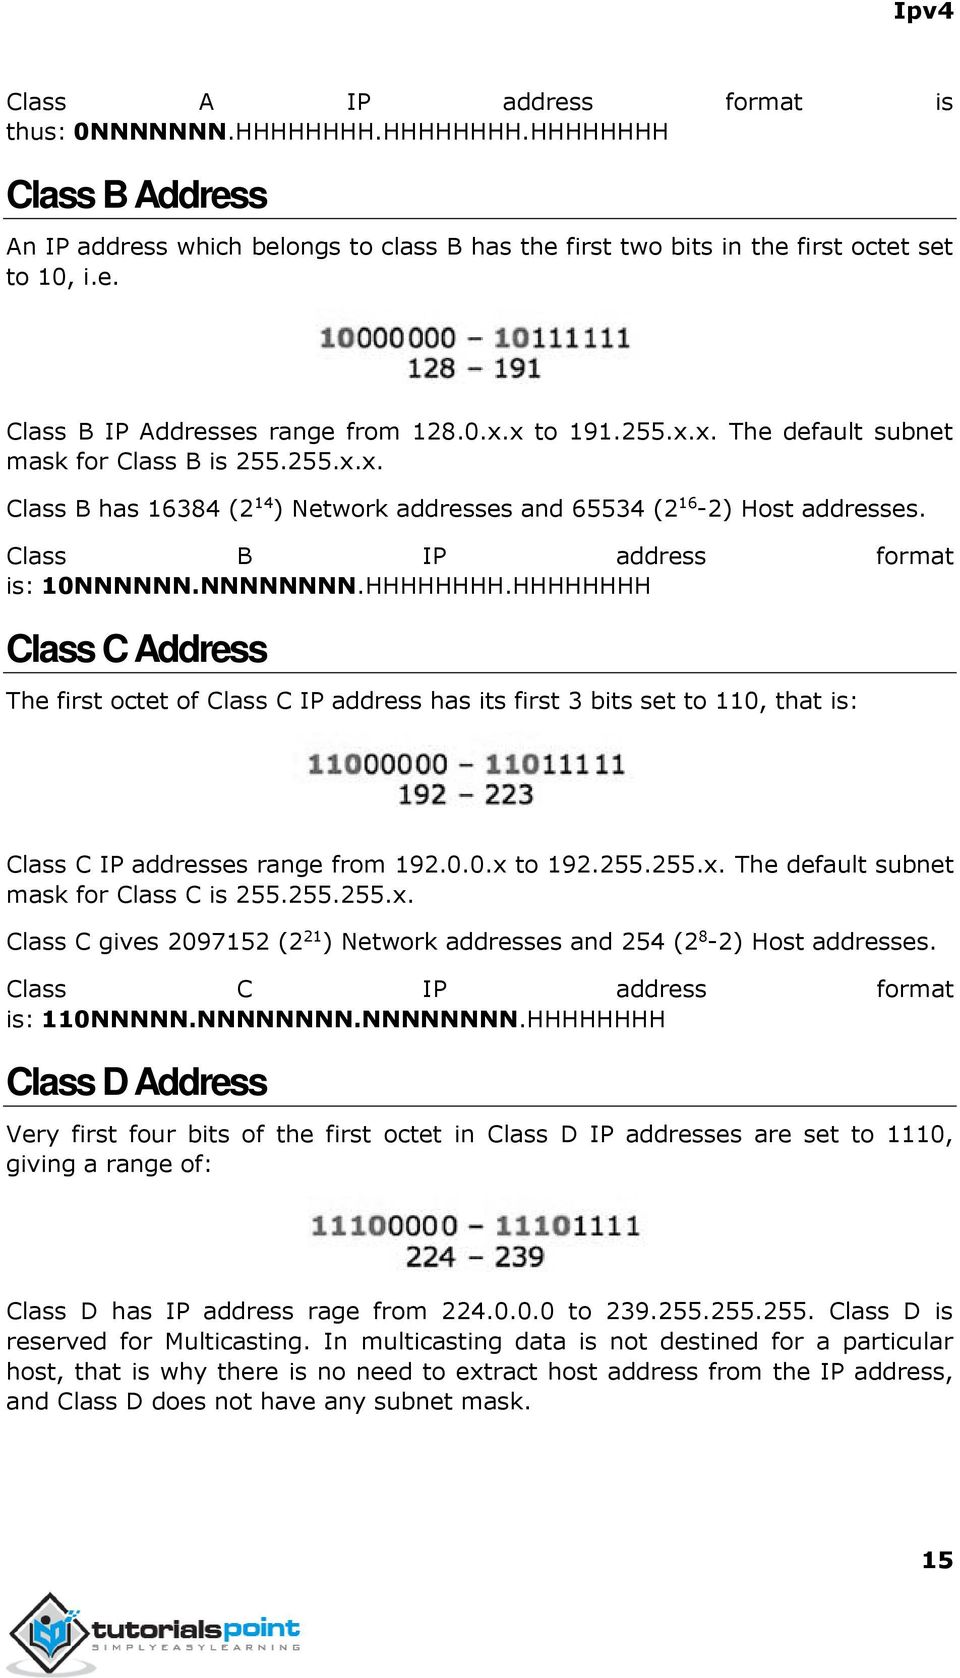 NNNNNNNN.HHHHHHHH.HHHHHHHH Class C Address The first octet of Class C IP address has its first 3 bits set to 110, that is: Class C IP addresses range from 192.0.0.x